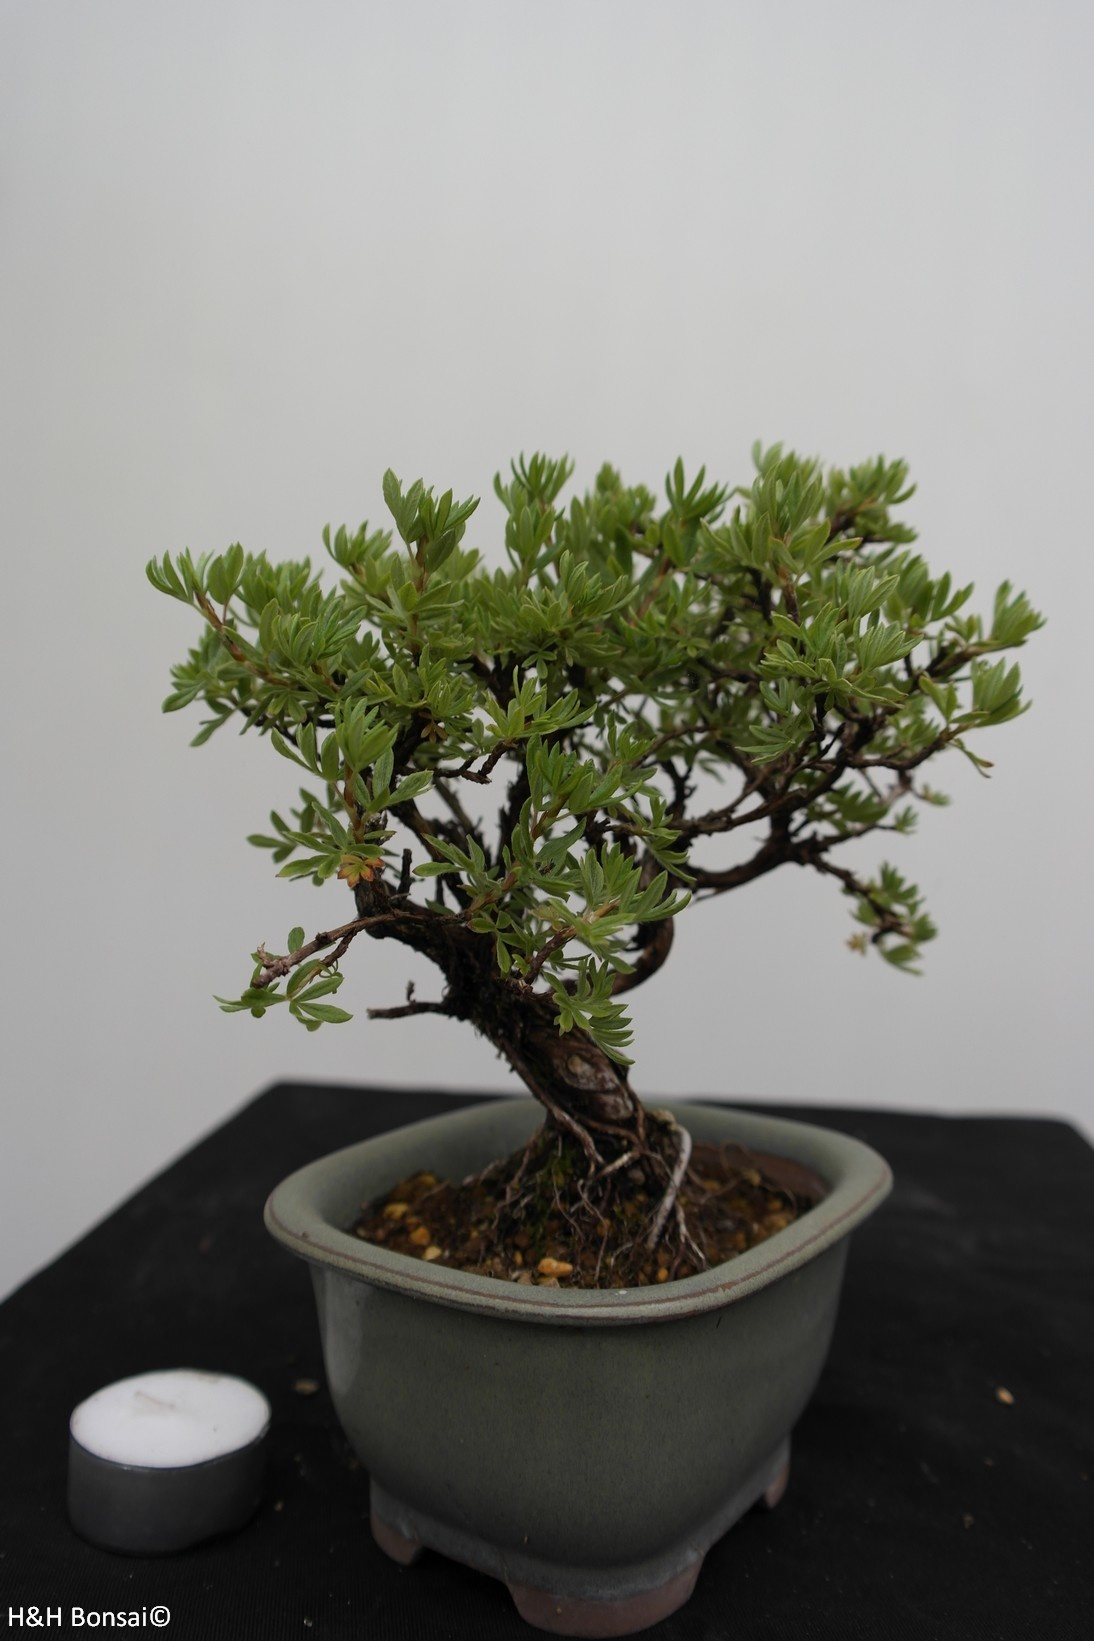 Bonsai Shohin Potentilla fruticosa, no. 7775